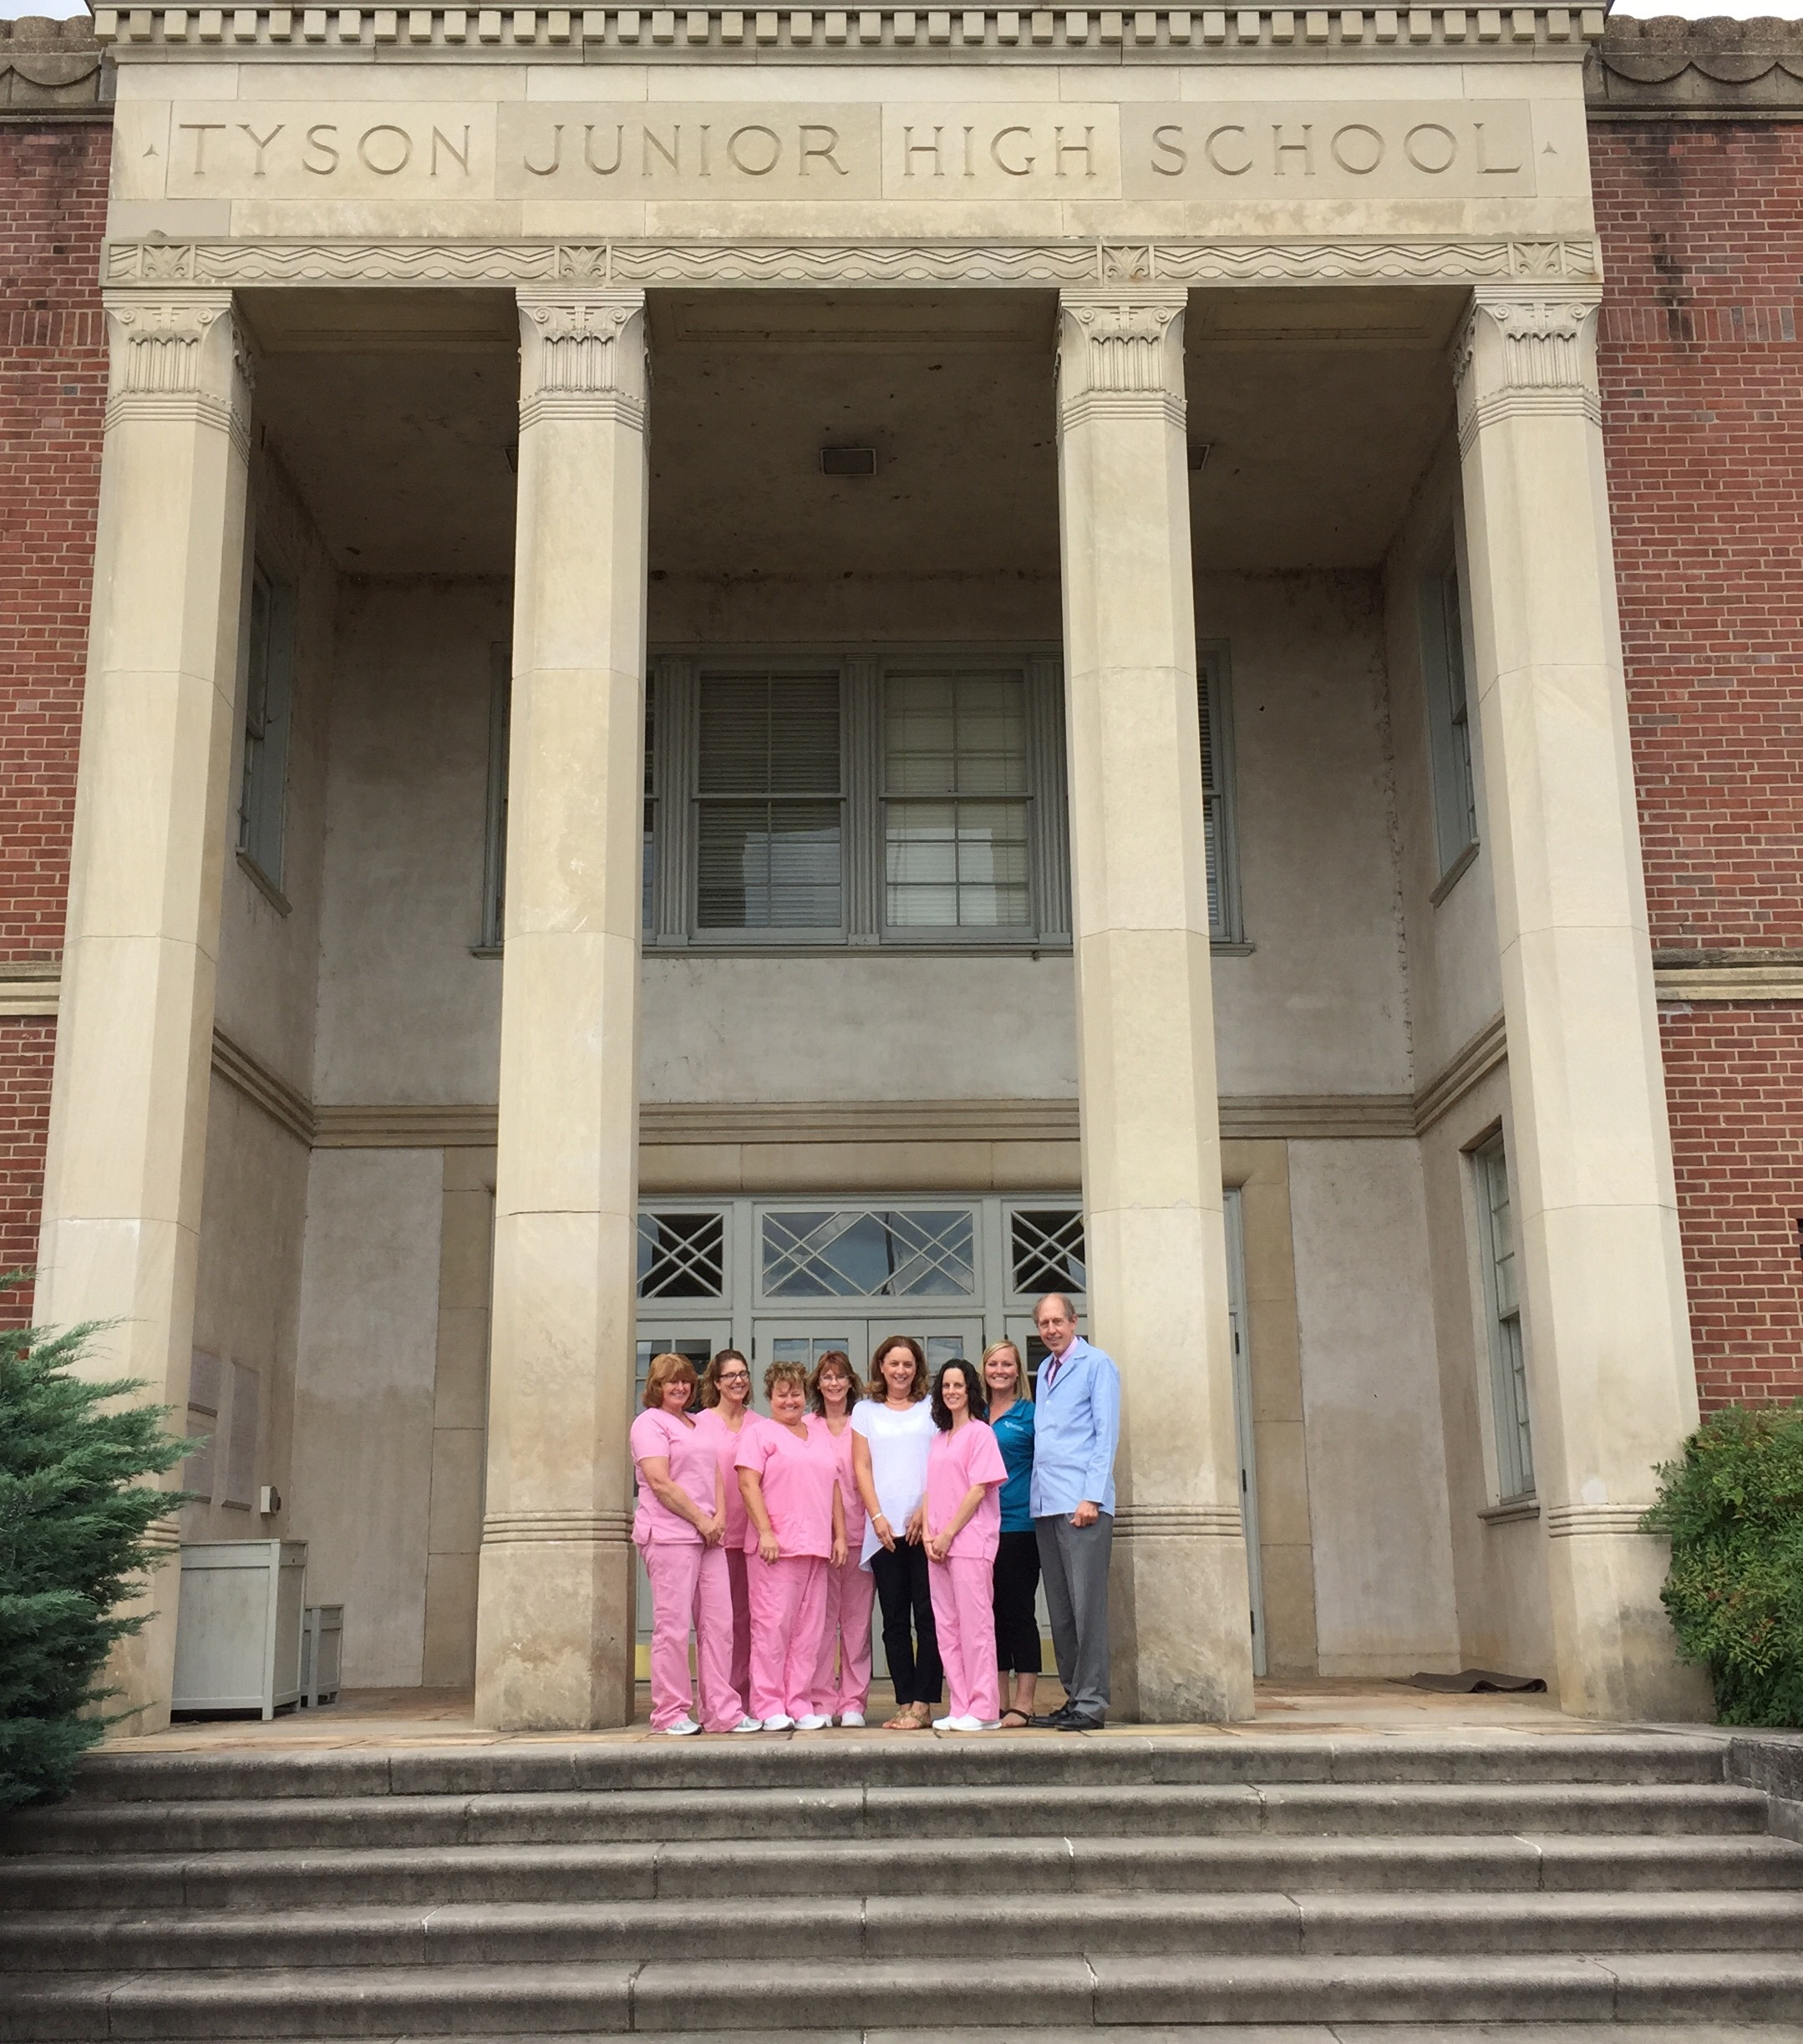 Dr. Fain's office is located in a historic school building!